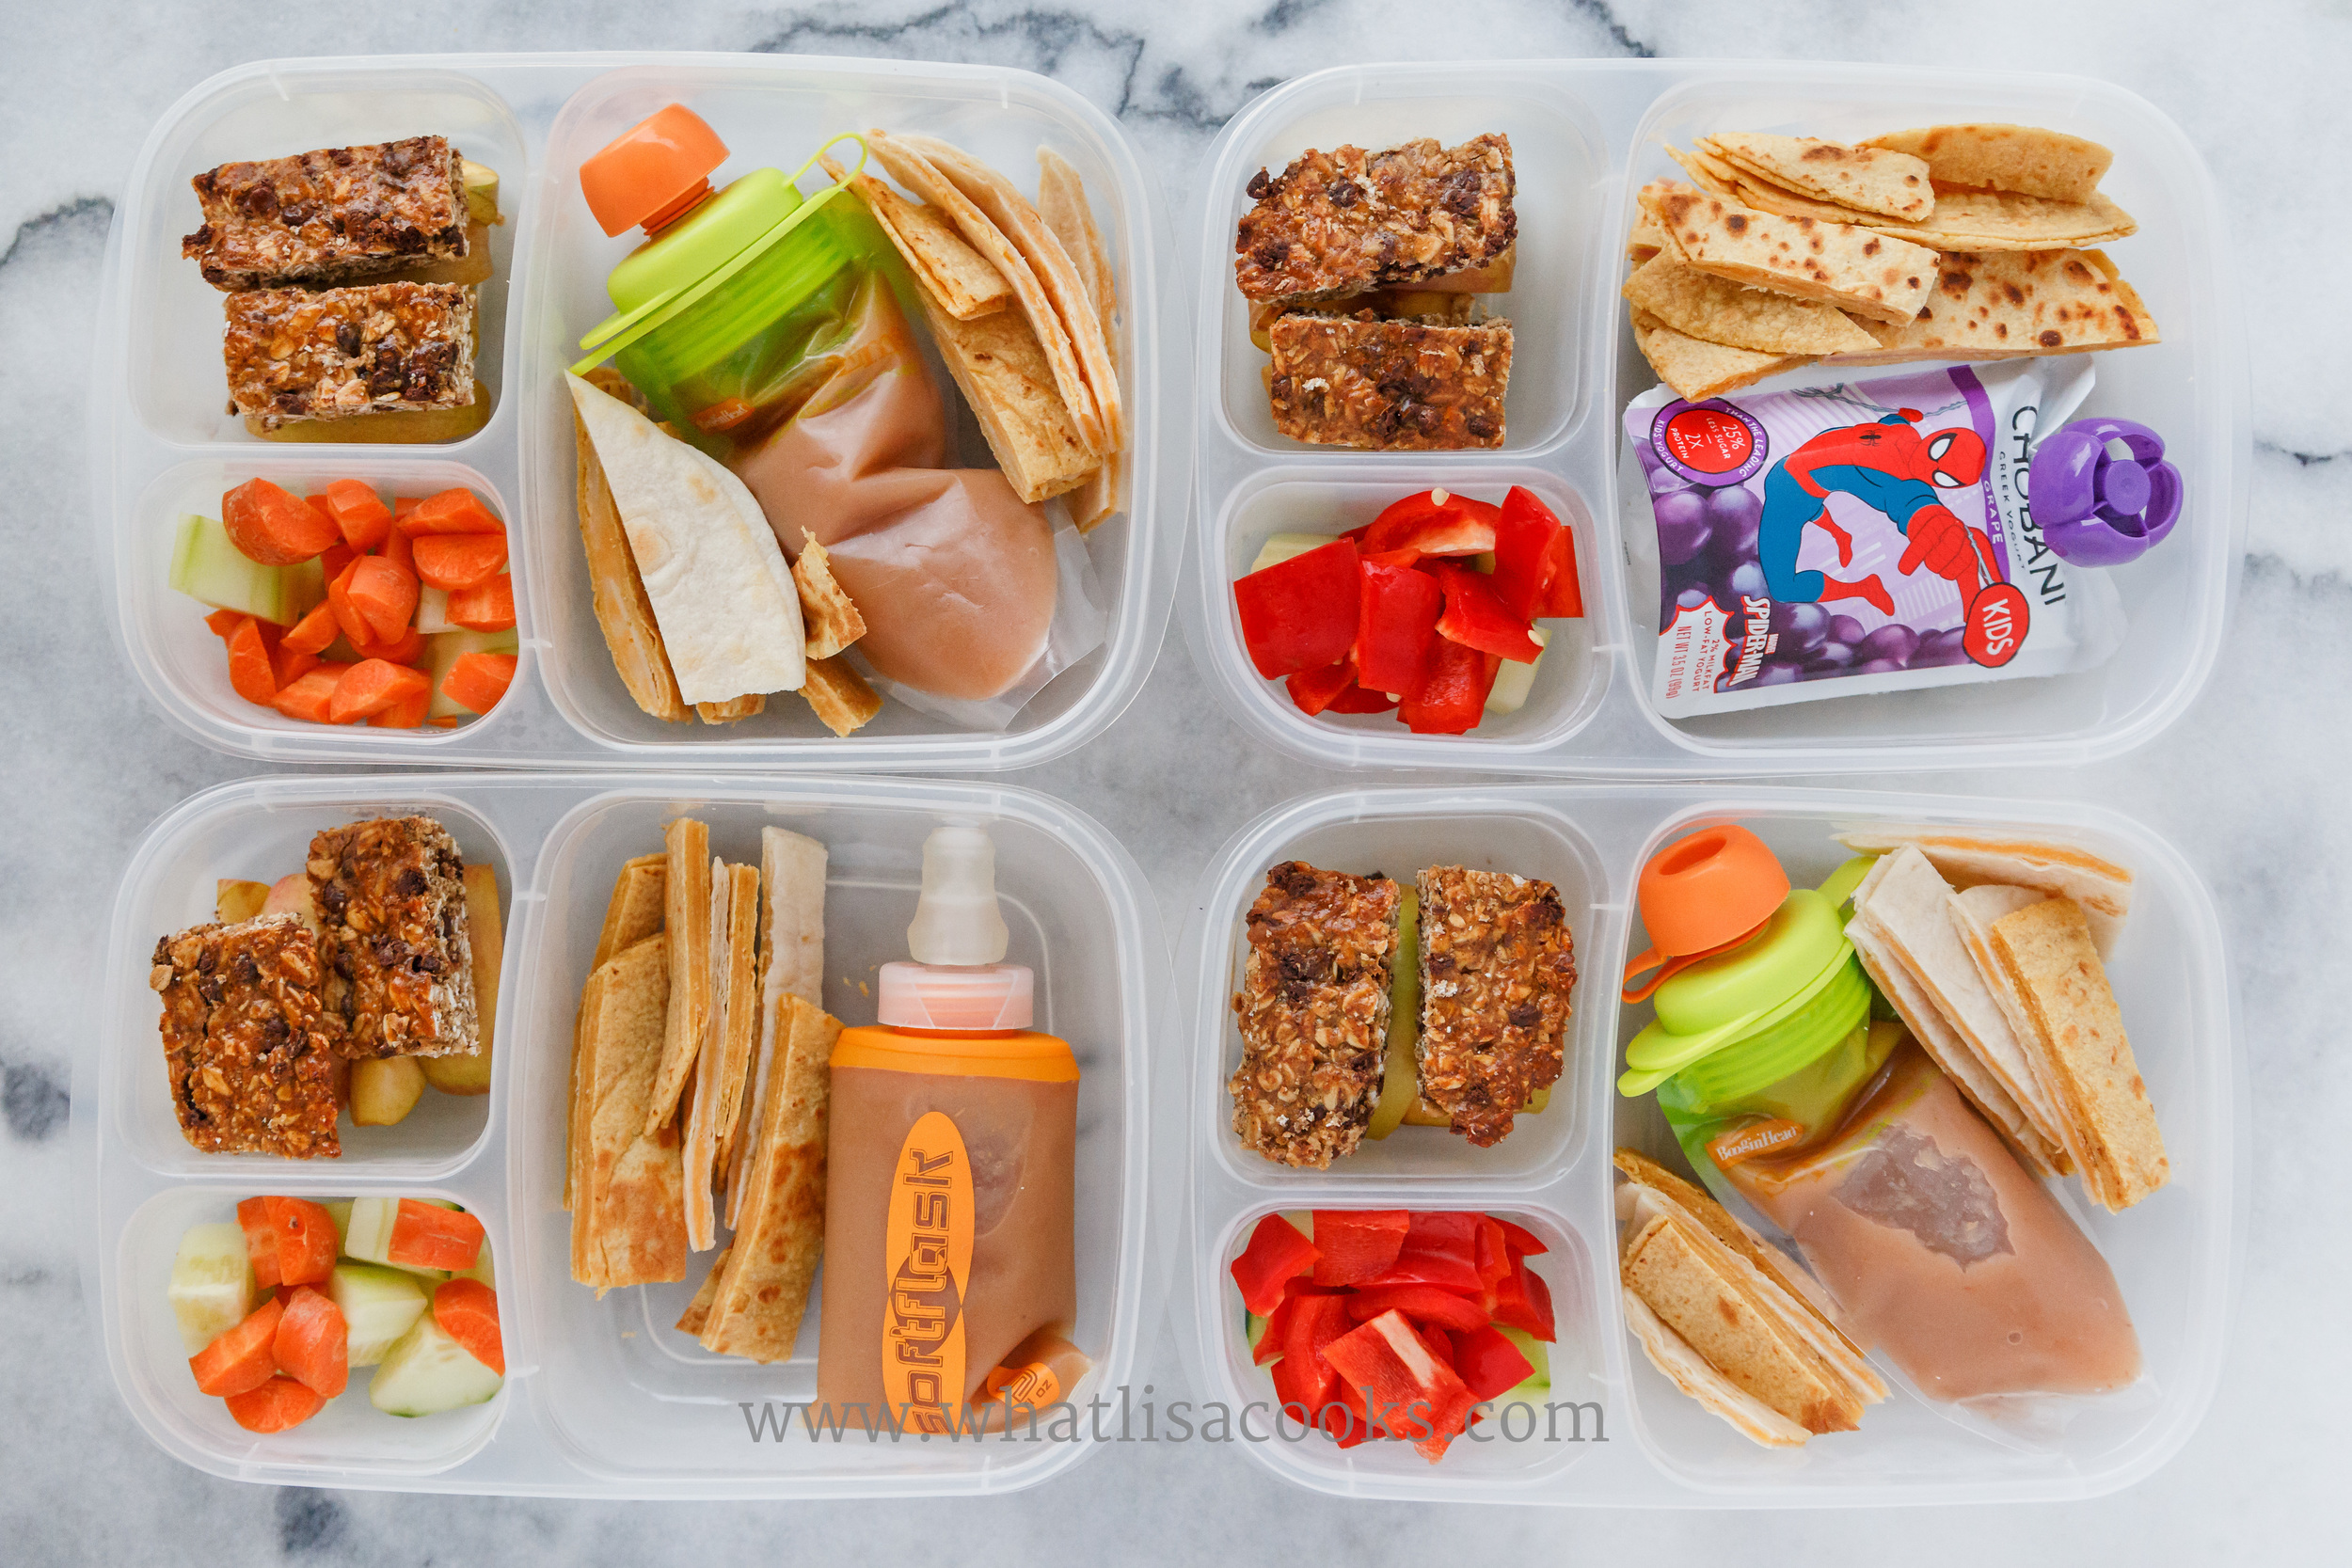 Quesadillas, homemade pear/apple sauce (one has yogurt), homemade granola bars, apples, carrots, cucumbers.  Packed in  Easy Lunchboxes .